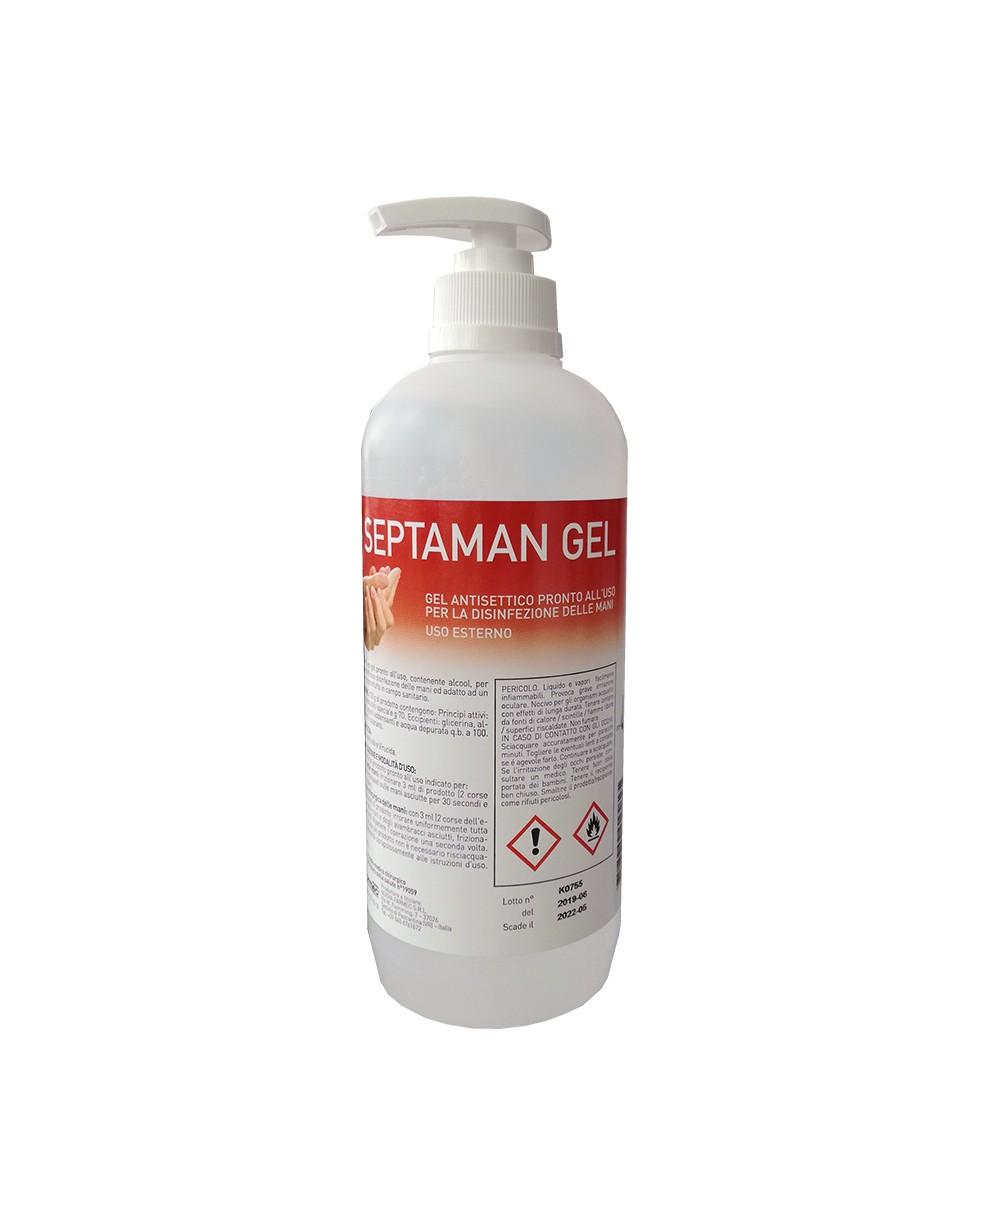 Gel Septaman Antisettico Pronto All'uso 500 Ml